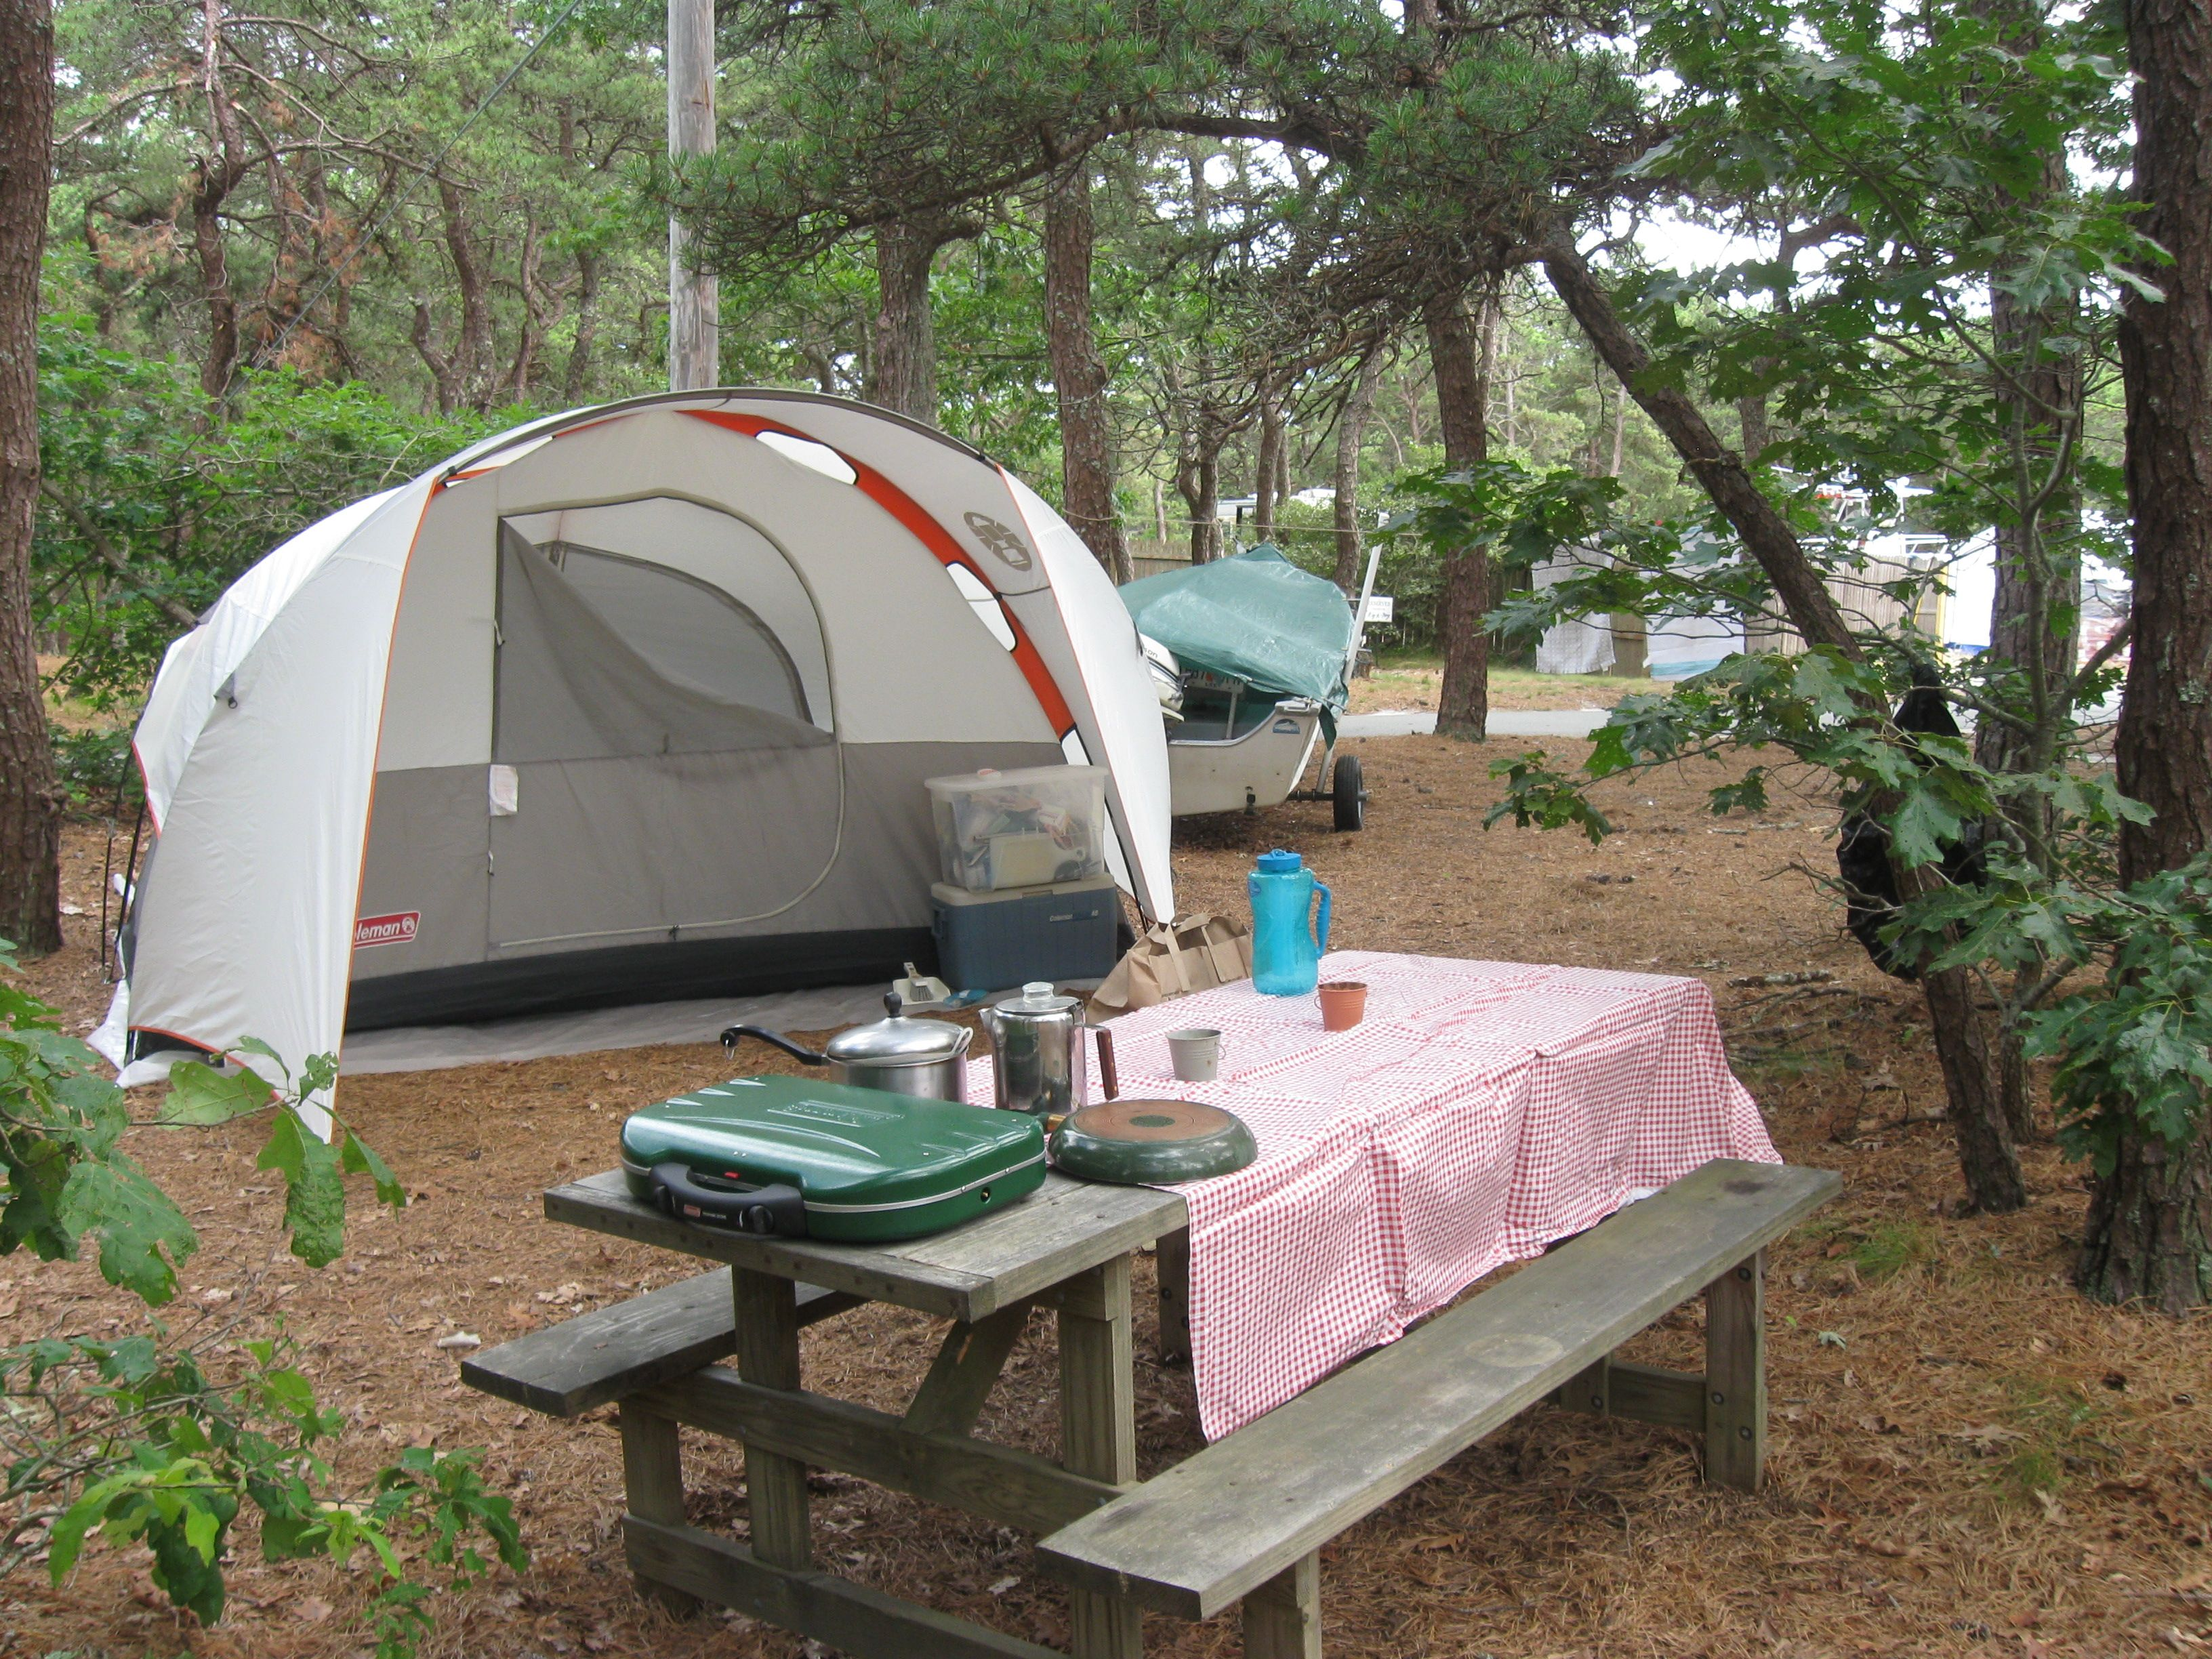 Just your typical camping set up at Adventure Bound ...